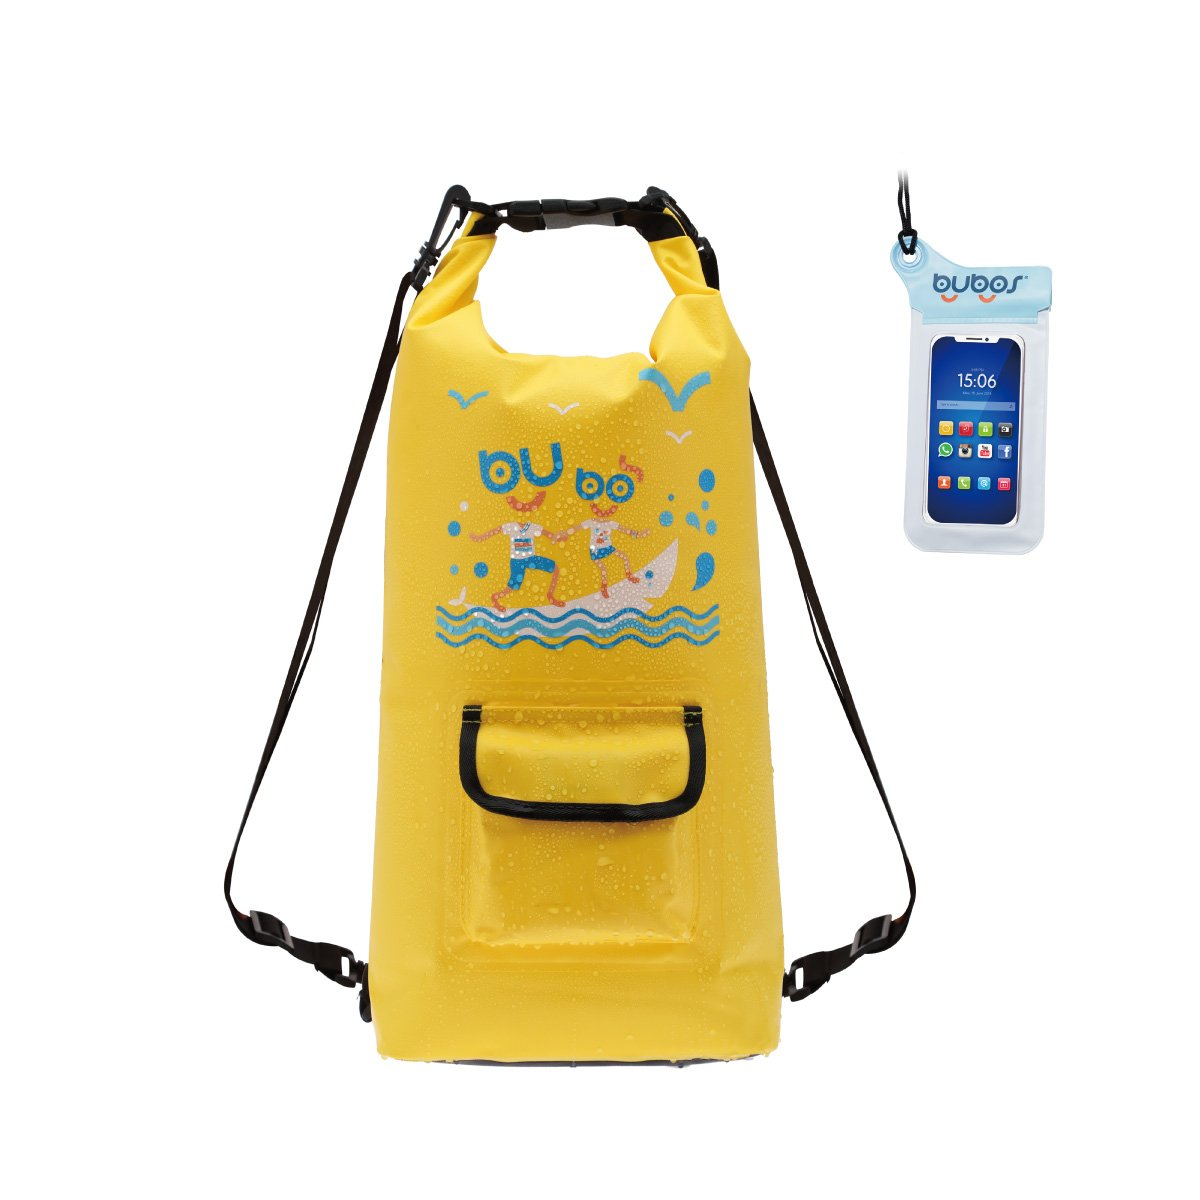 BUBOS Waterproof Dry Bag, Roll Top Sack Keeps Gear Dry for Kayaking, Boating, Canoeing, Snowboarding, Fishing, Rafting, Swimming, Camping with waterproof Phone Case, Yellow. by BUBOS